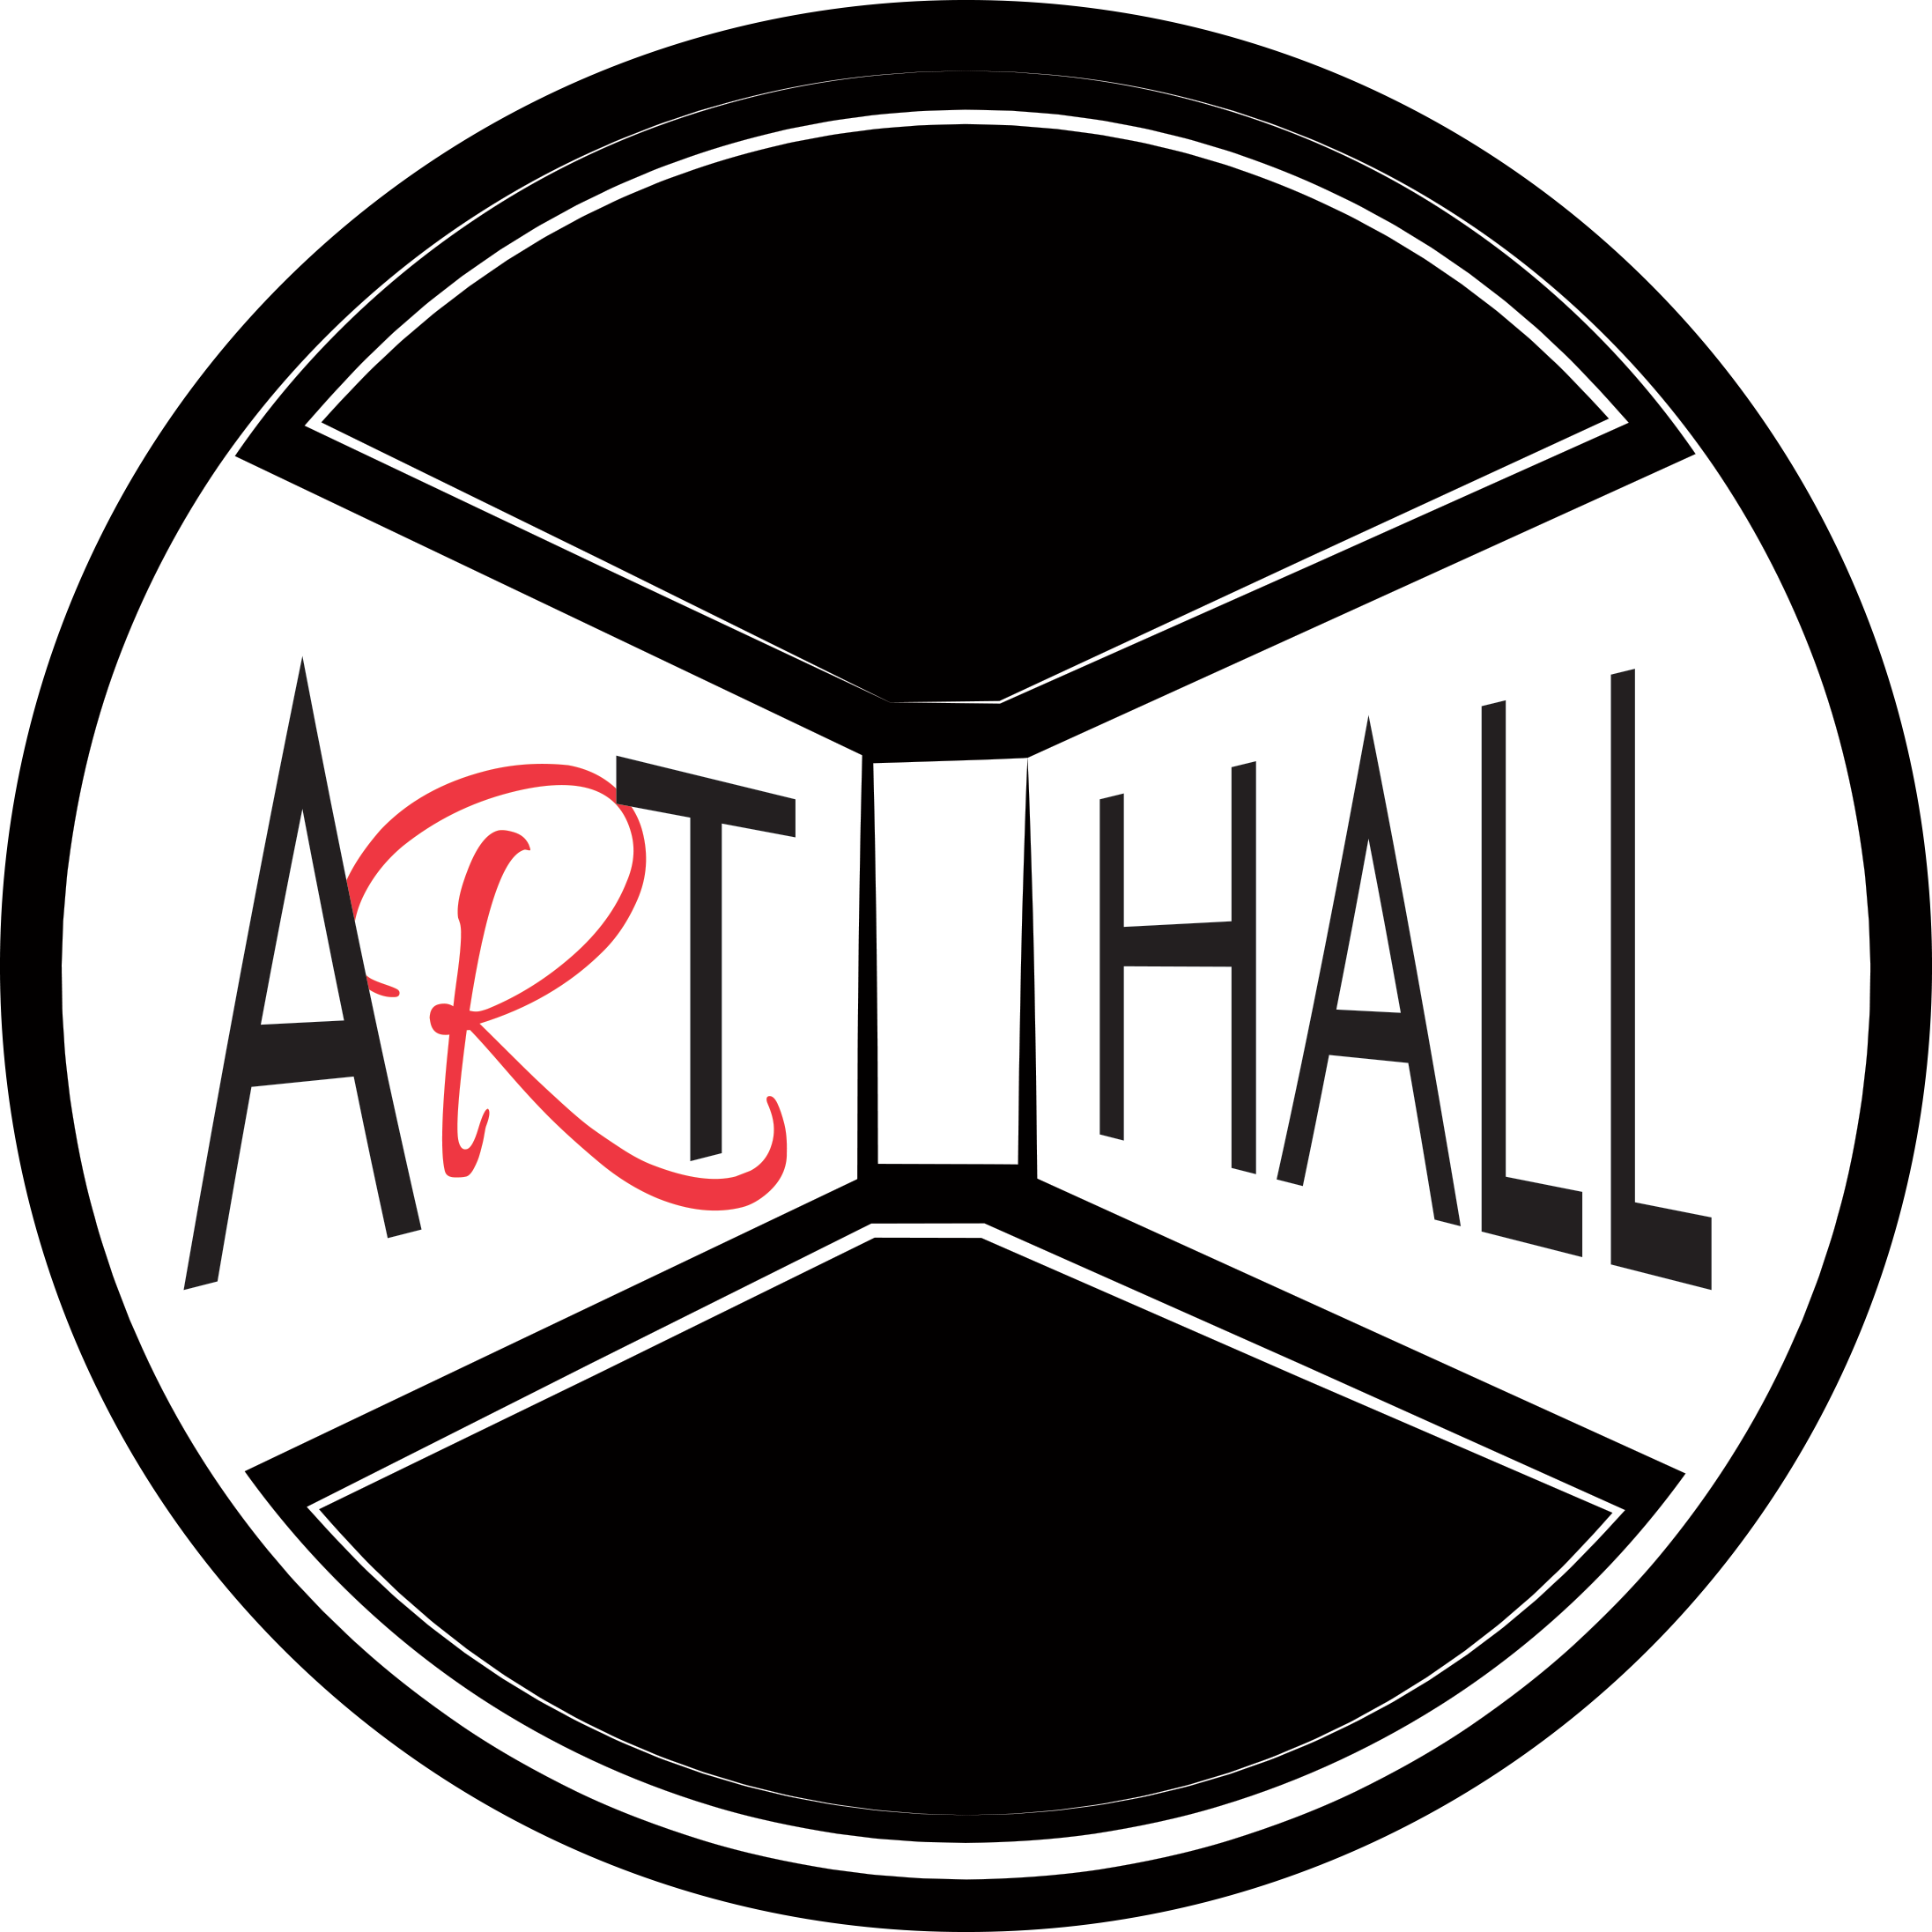 The Art Hall